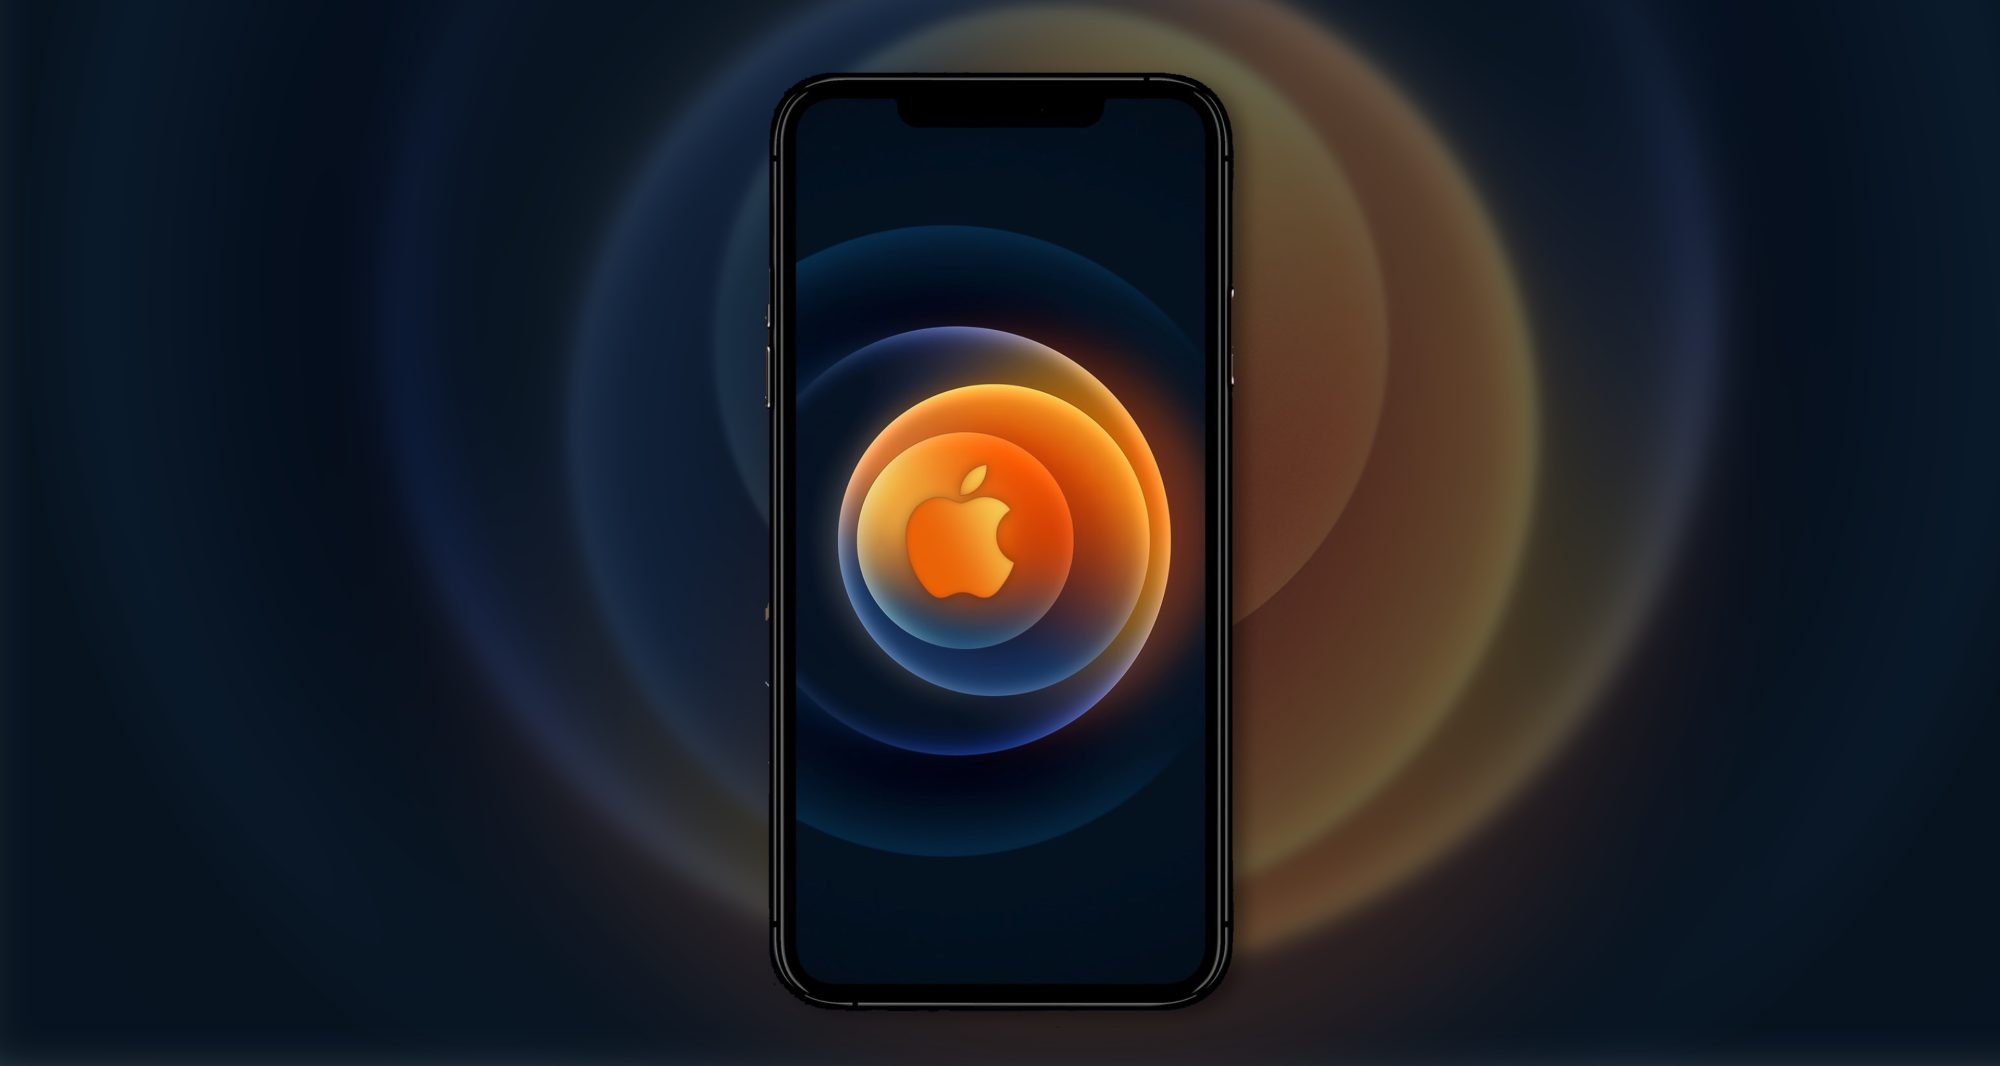 Apple event wallpapers